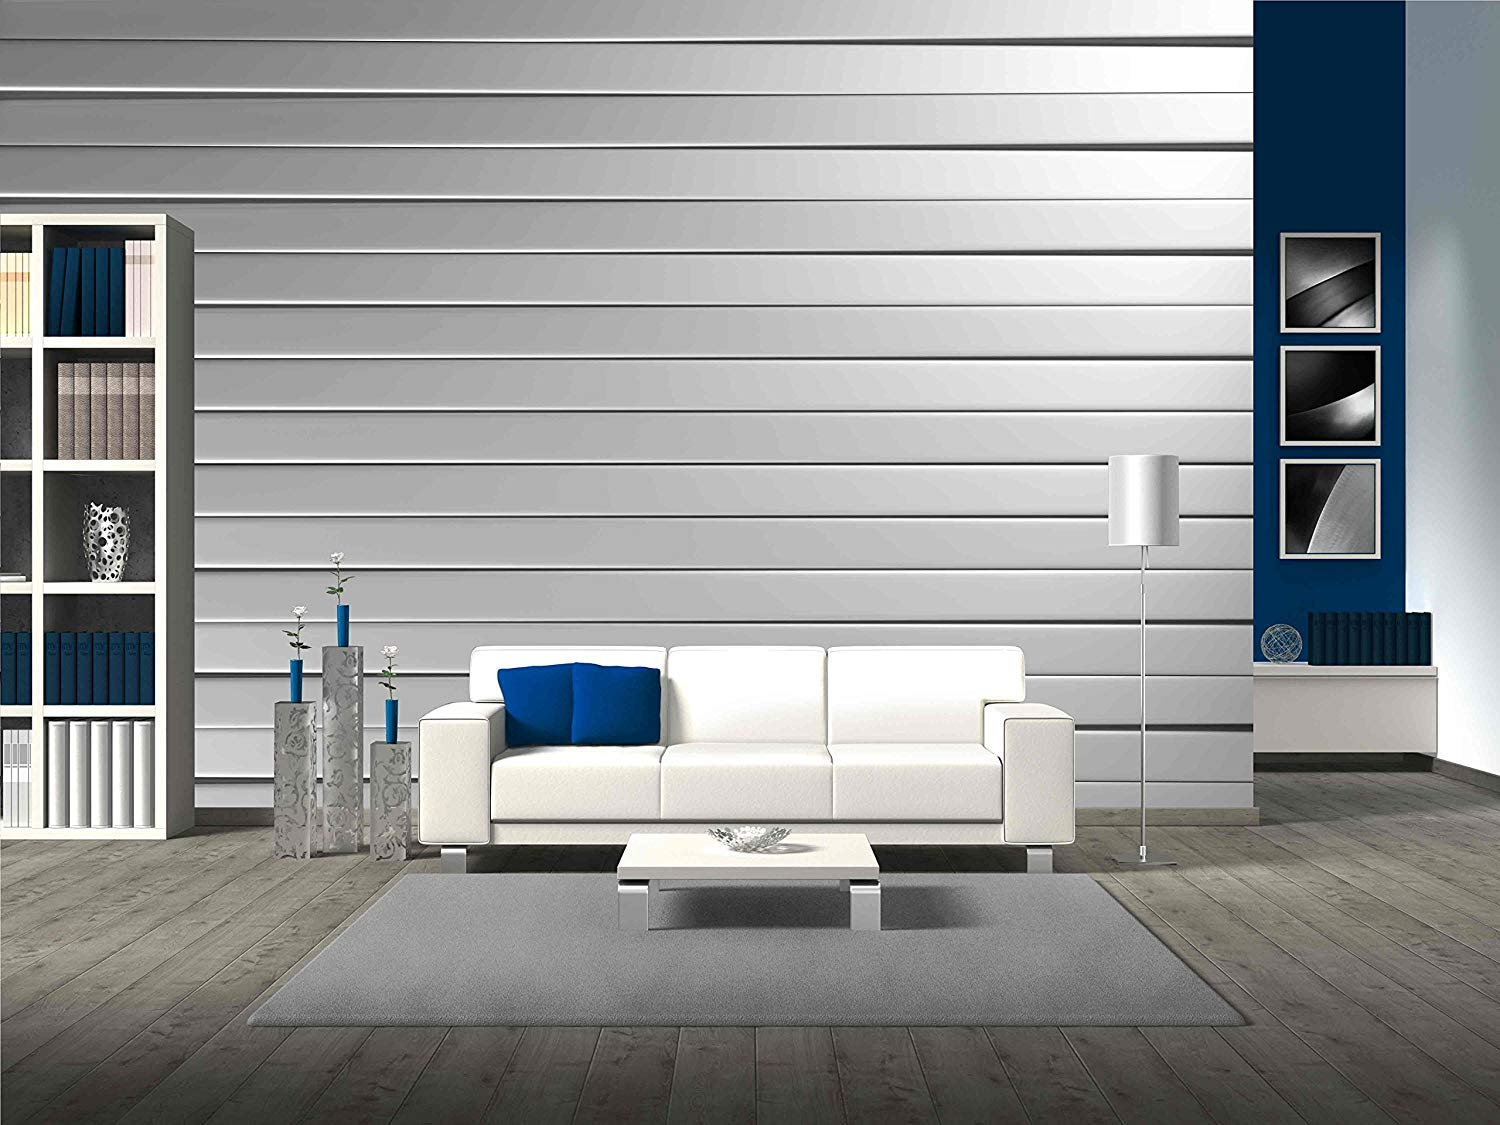 wall26 Aluminum Stripe Pattern Background - Wall Mural | Self-adhesive Large Wallpaper - 66 x 96 inches